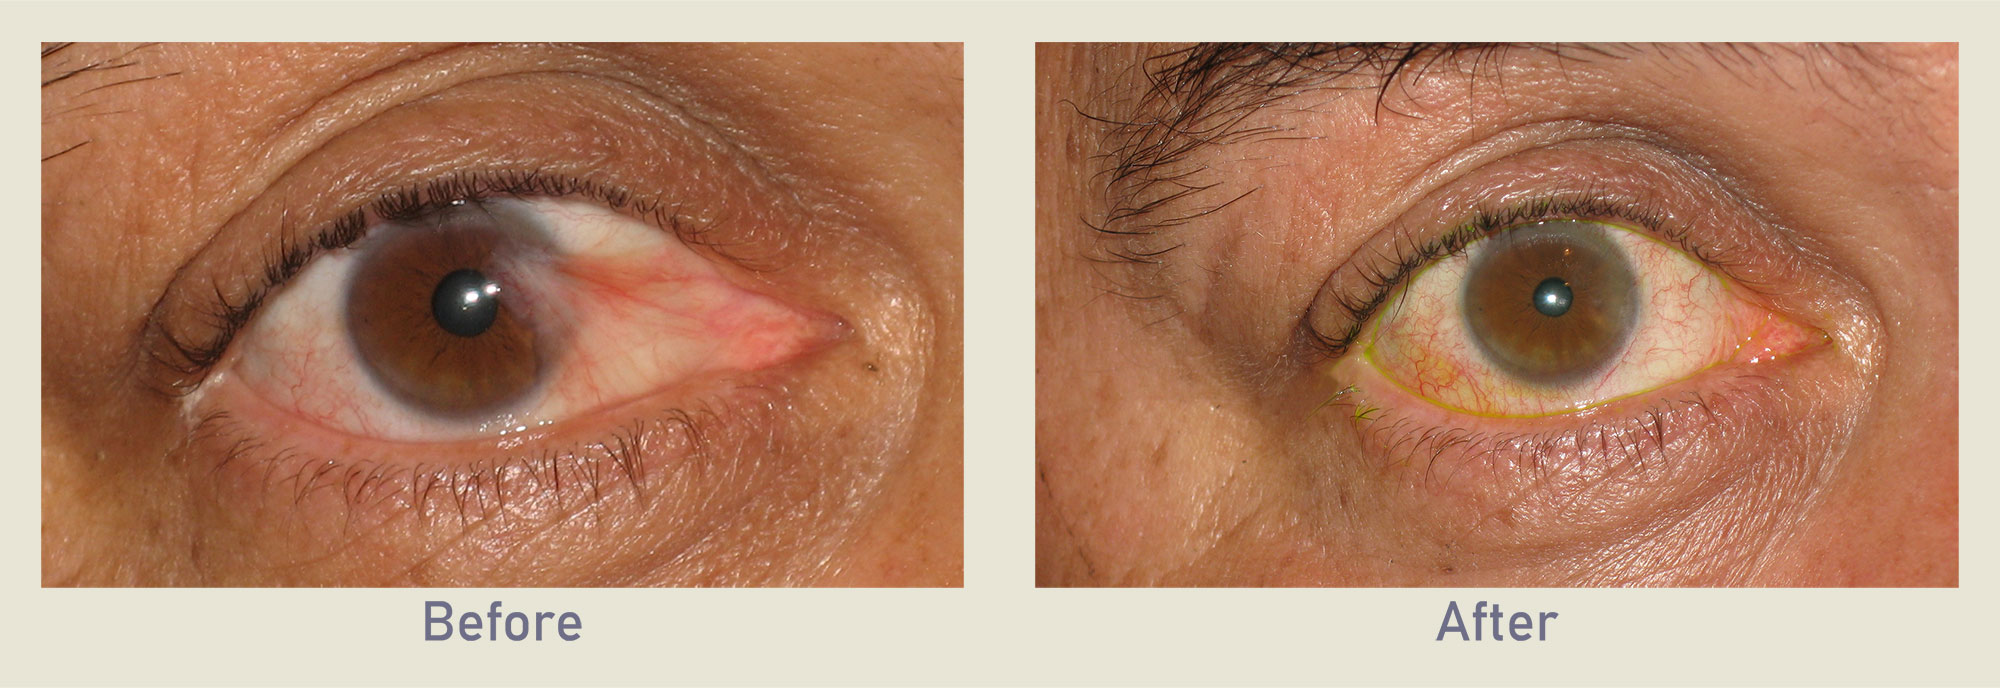 Pterygium Carnosidad Surfers Eye Before After